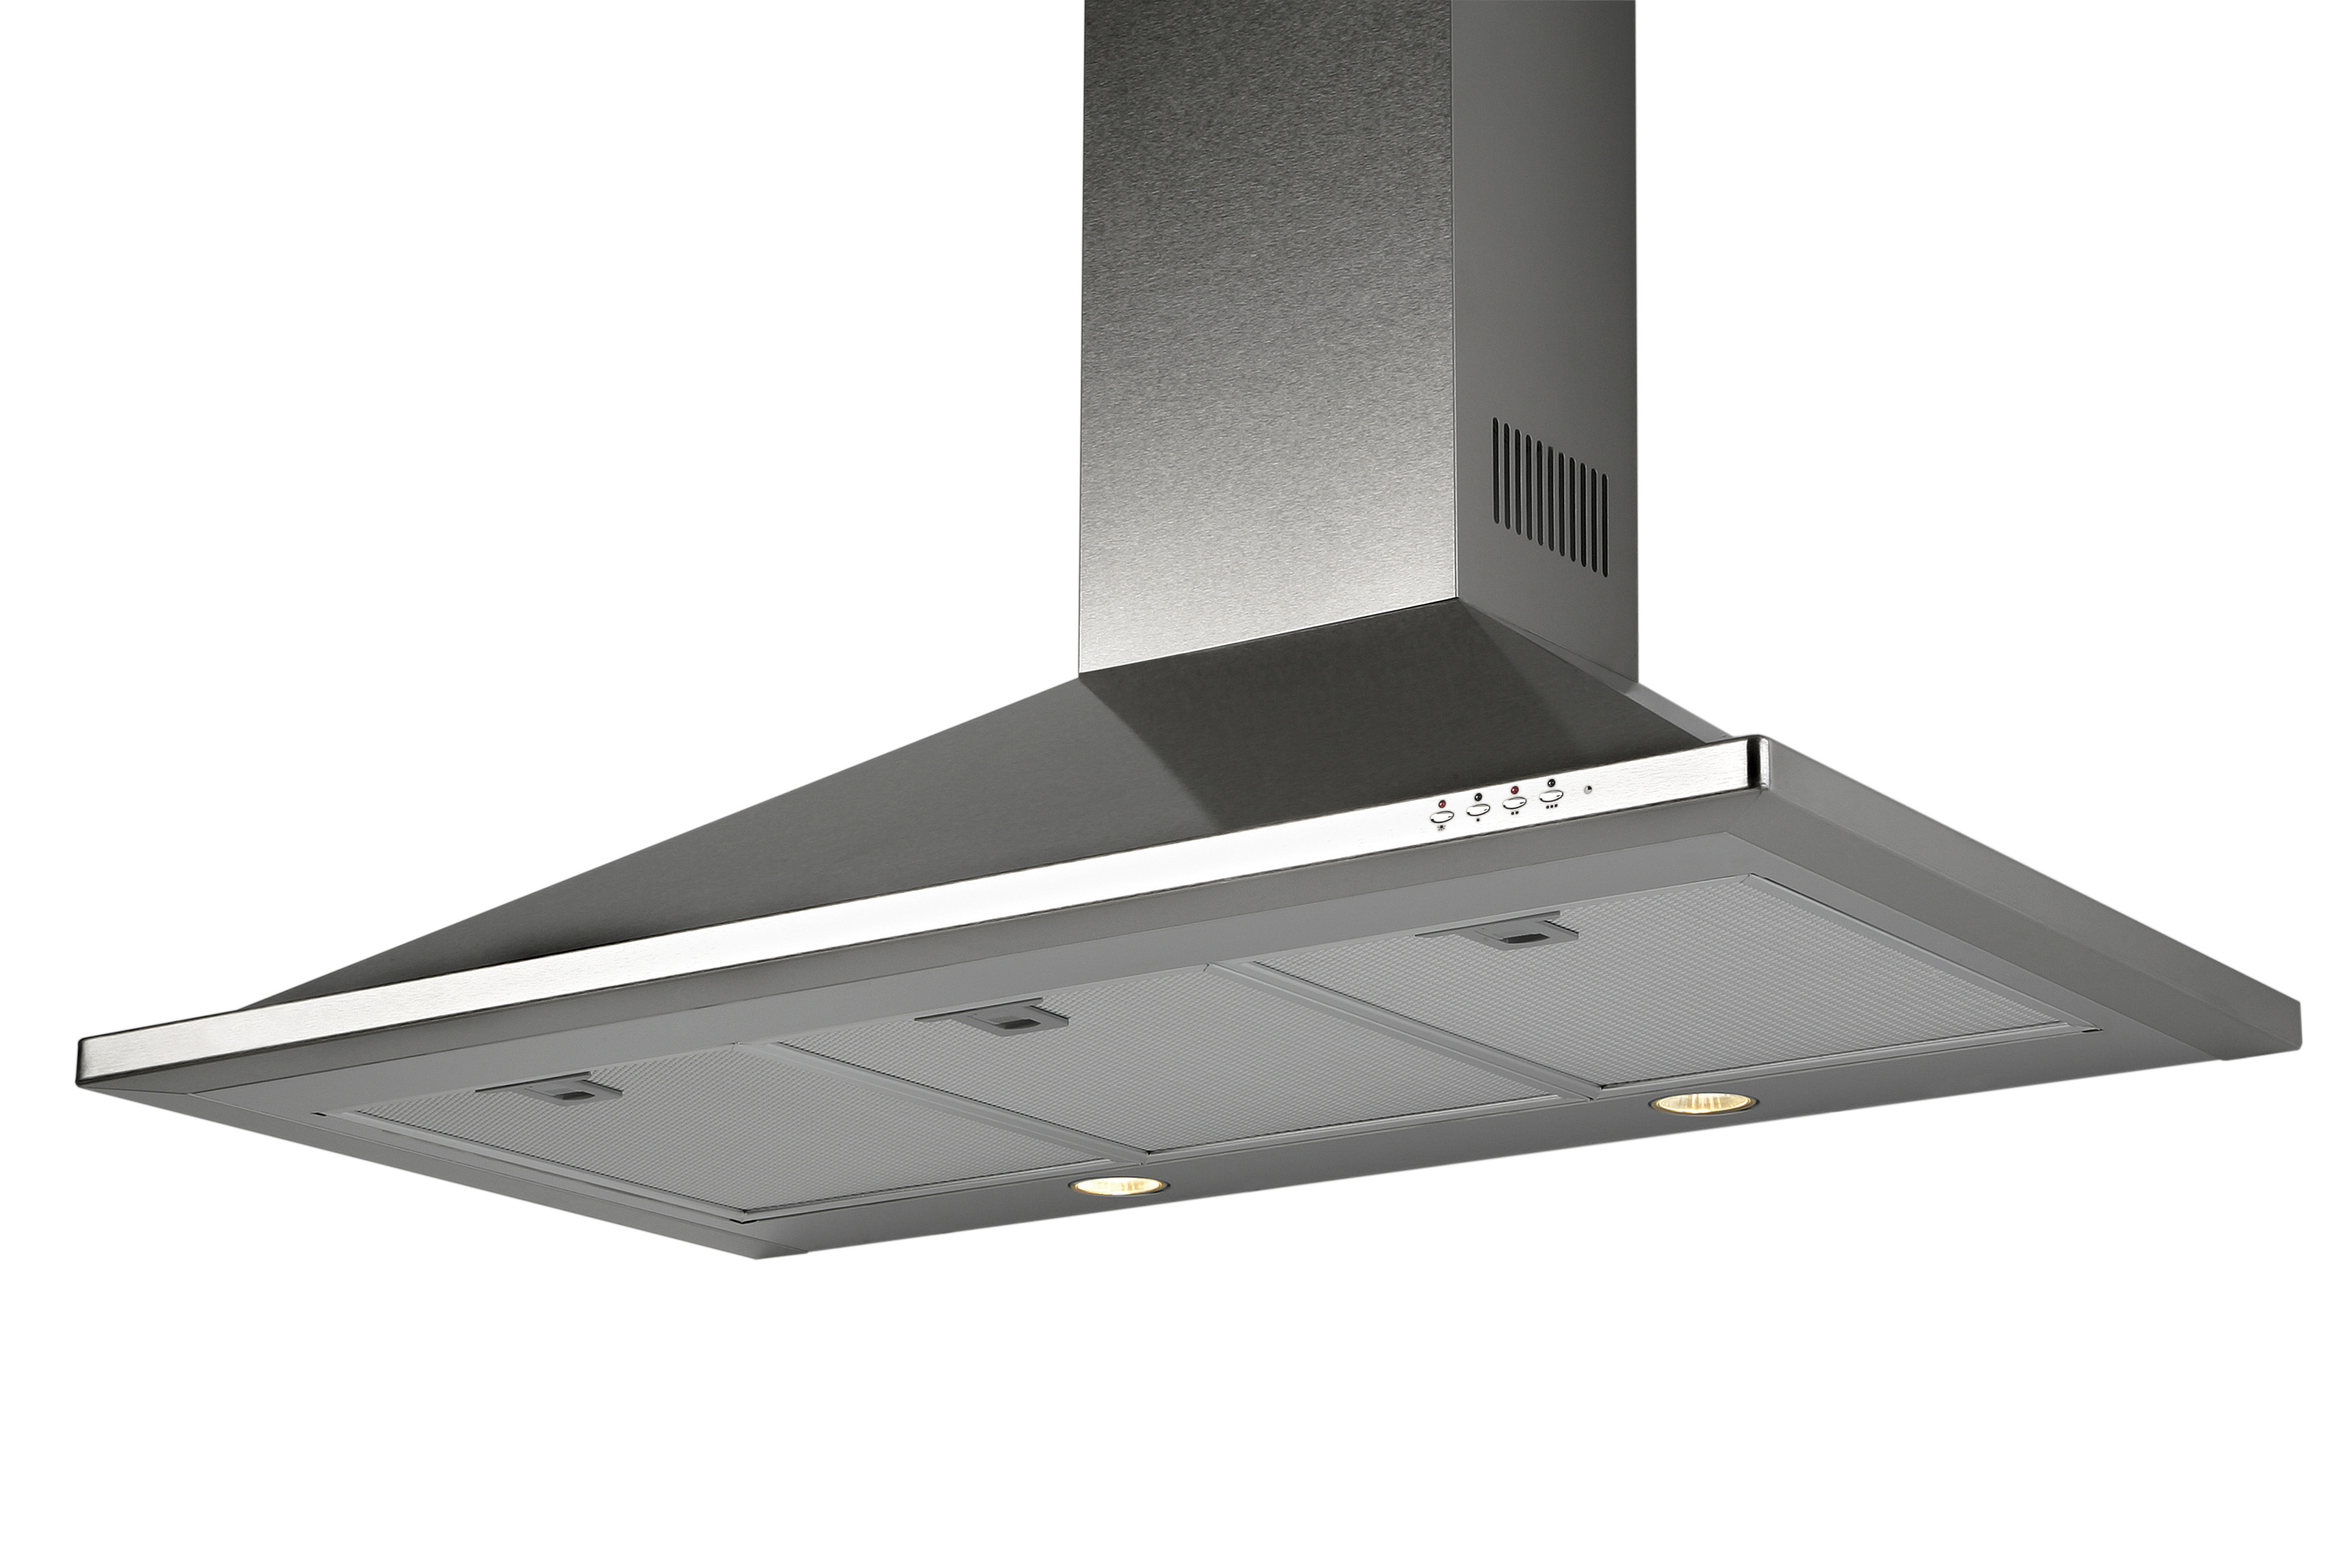 Equator TR 36 Trapezoidal Wall Mounted Rangehood with LED lights in Stainless. Made in Europe.